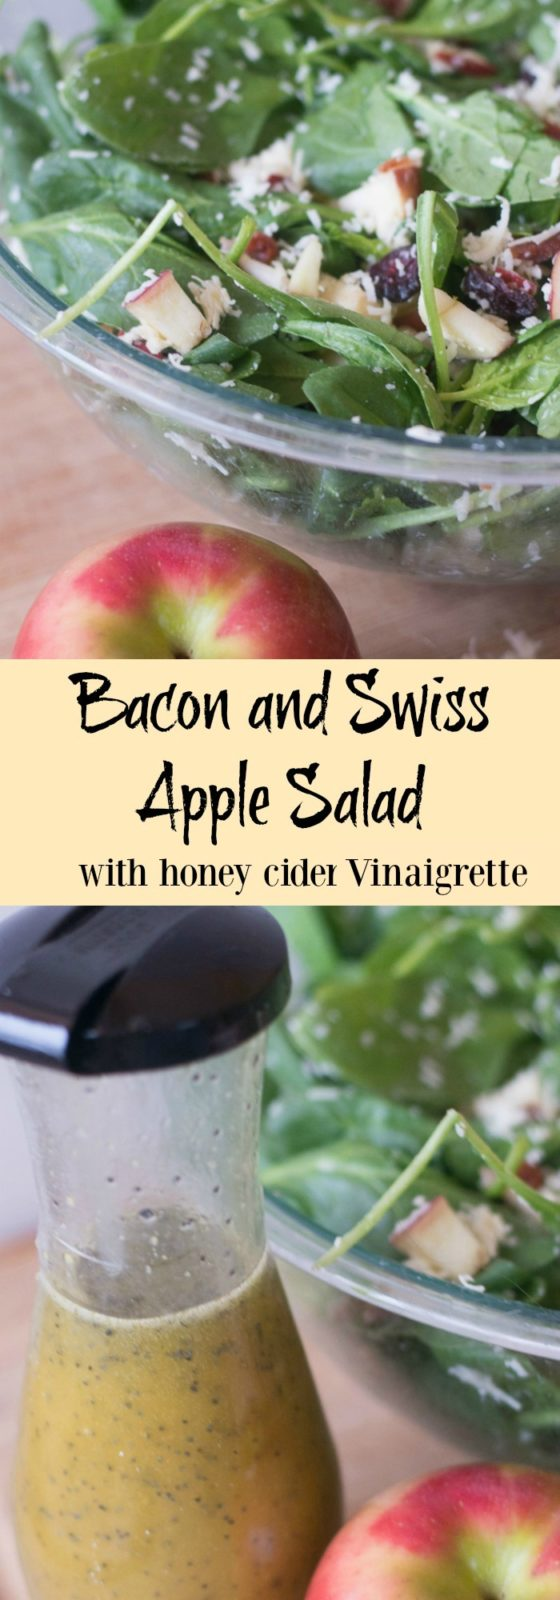 This was a HUGE hit when I brought it to a party - a bacon and swiss apple cider with a tangy honey cider vinaigrette. So tasty!